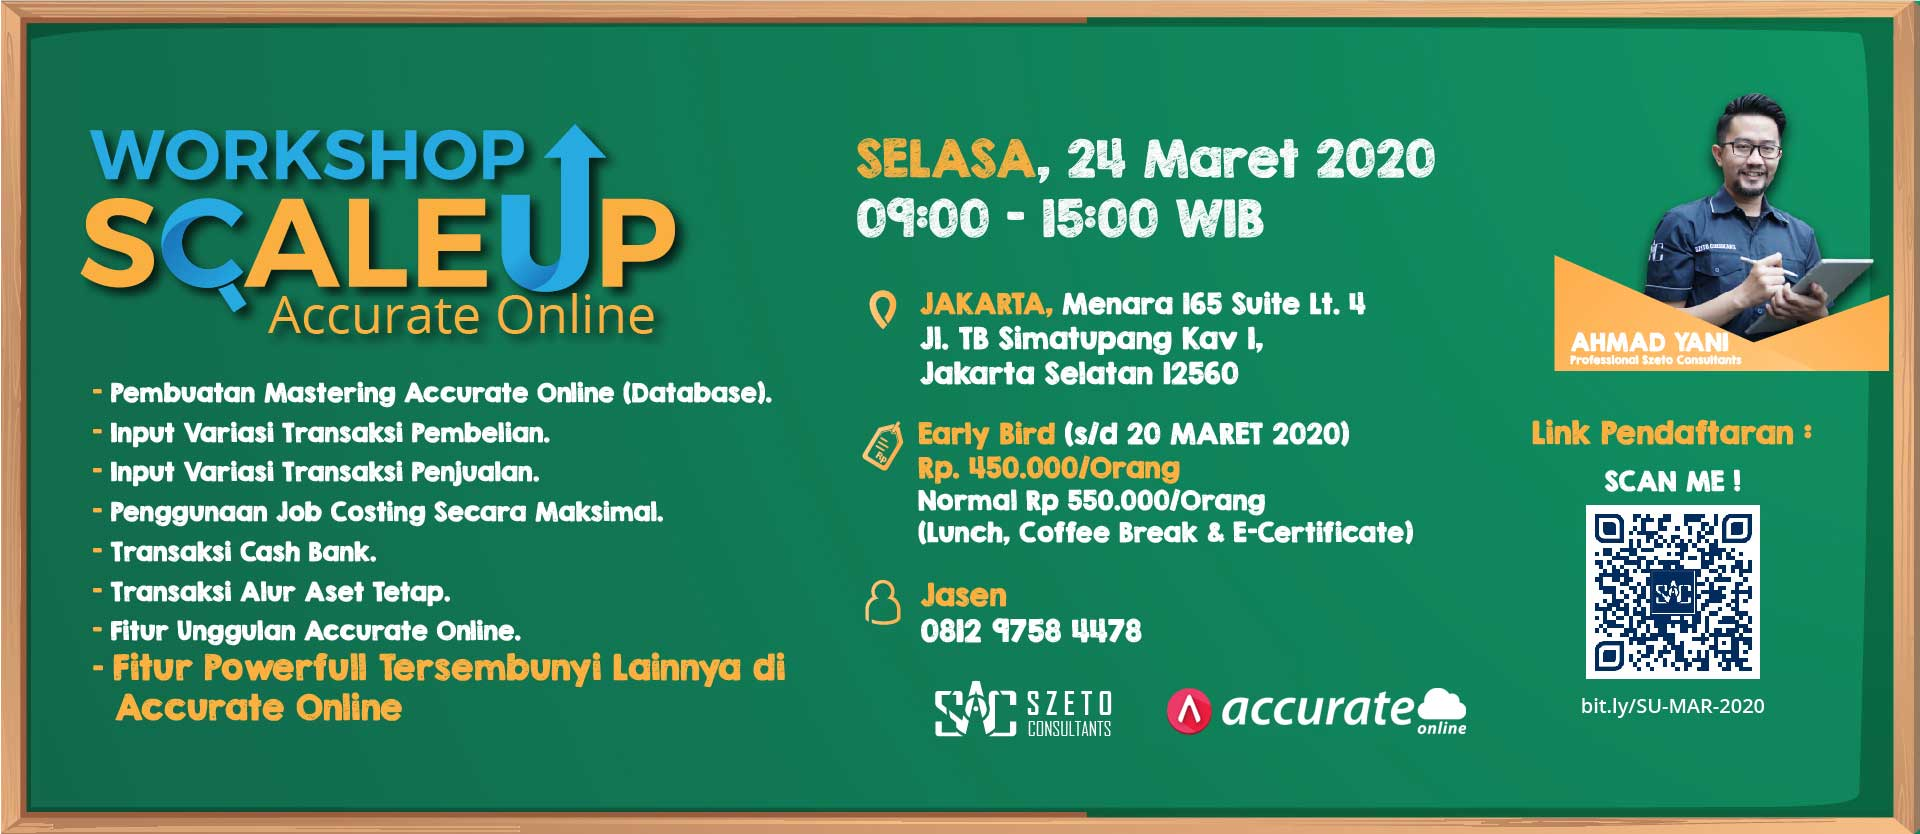 2020-Maret-24_Workshop-Scale-Up-Accurate-Online_Web